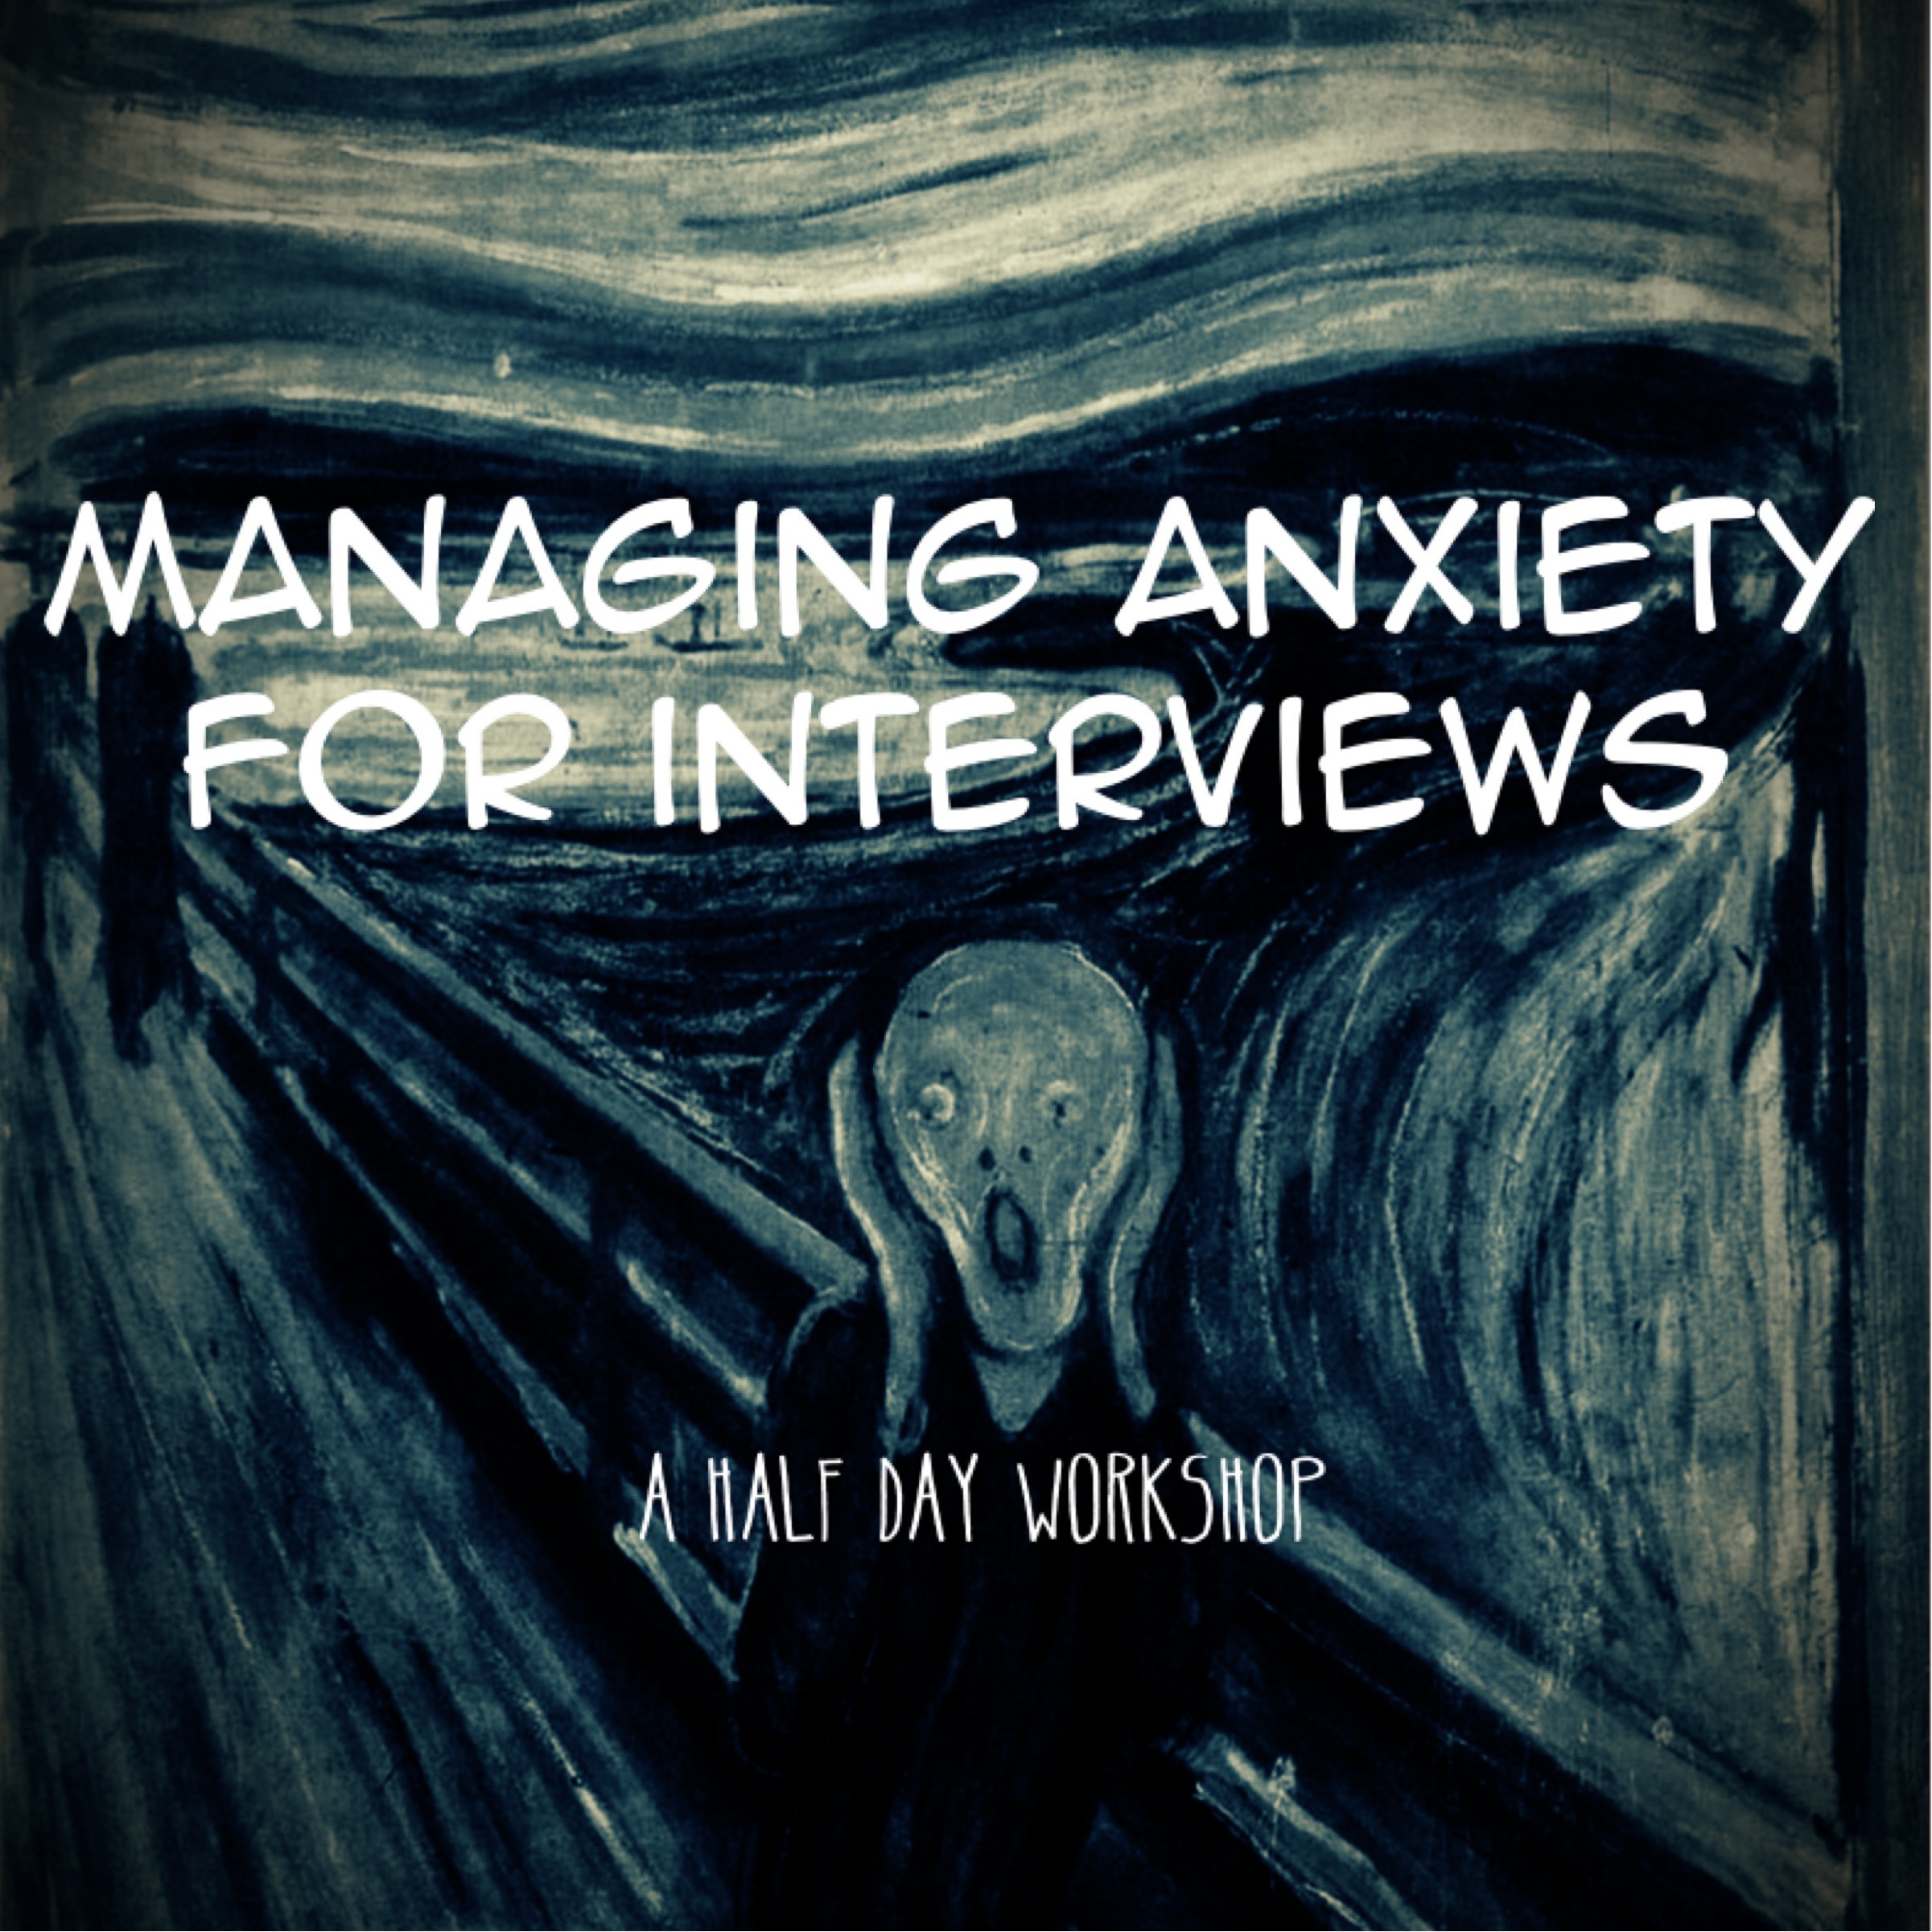 Managing anxiety for interviews